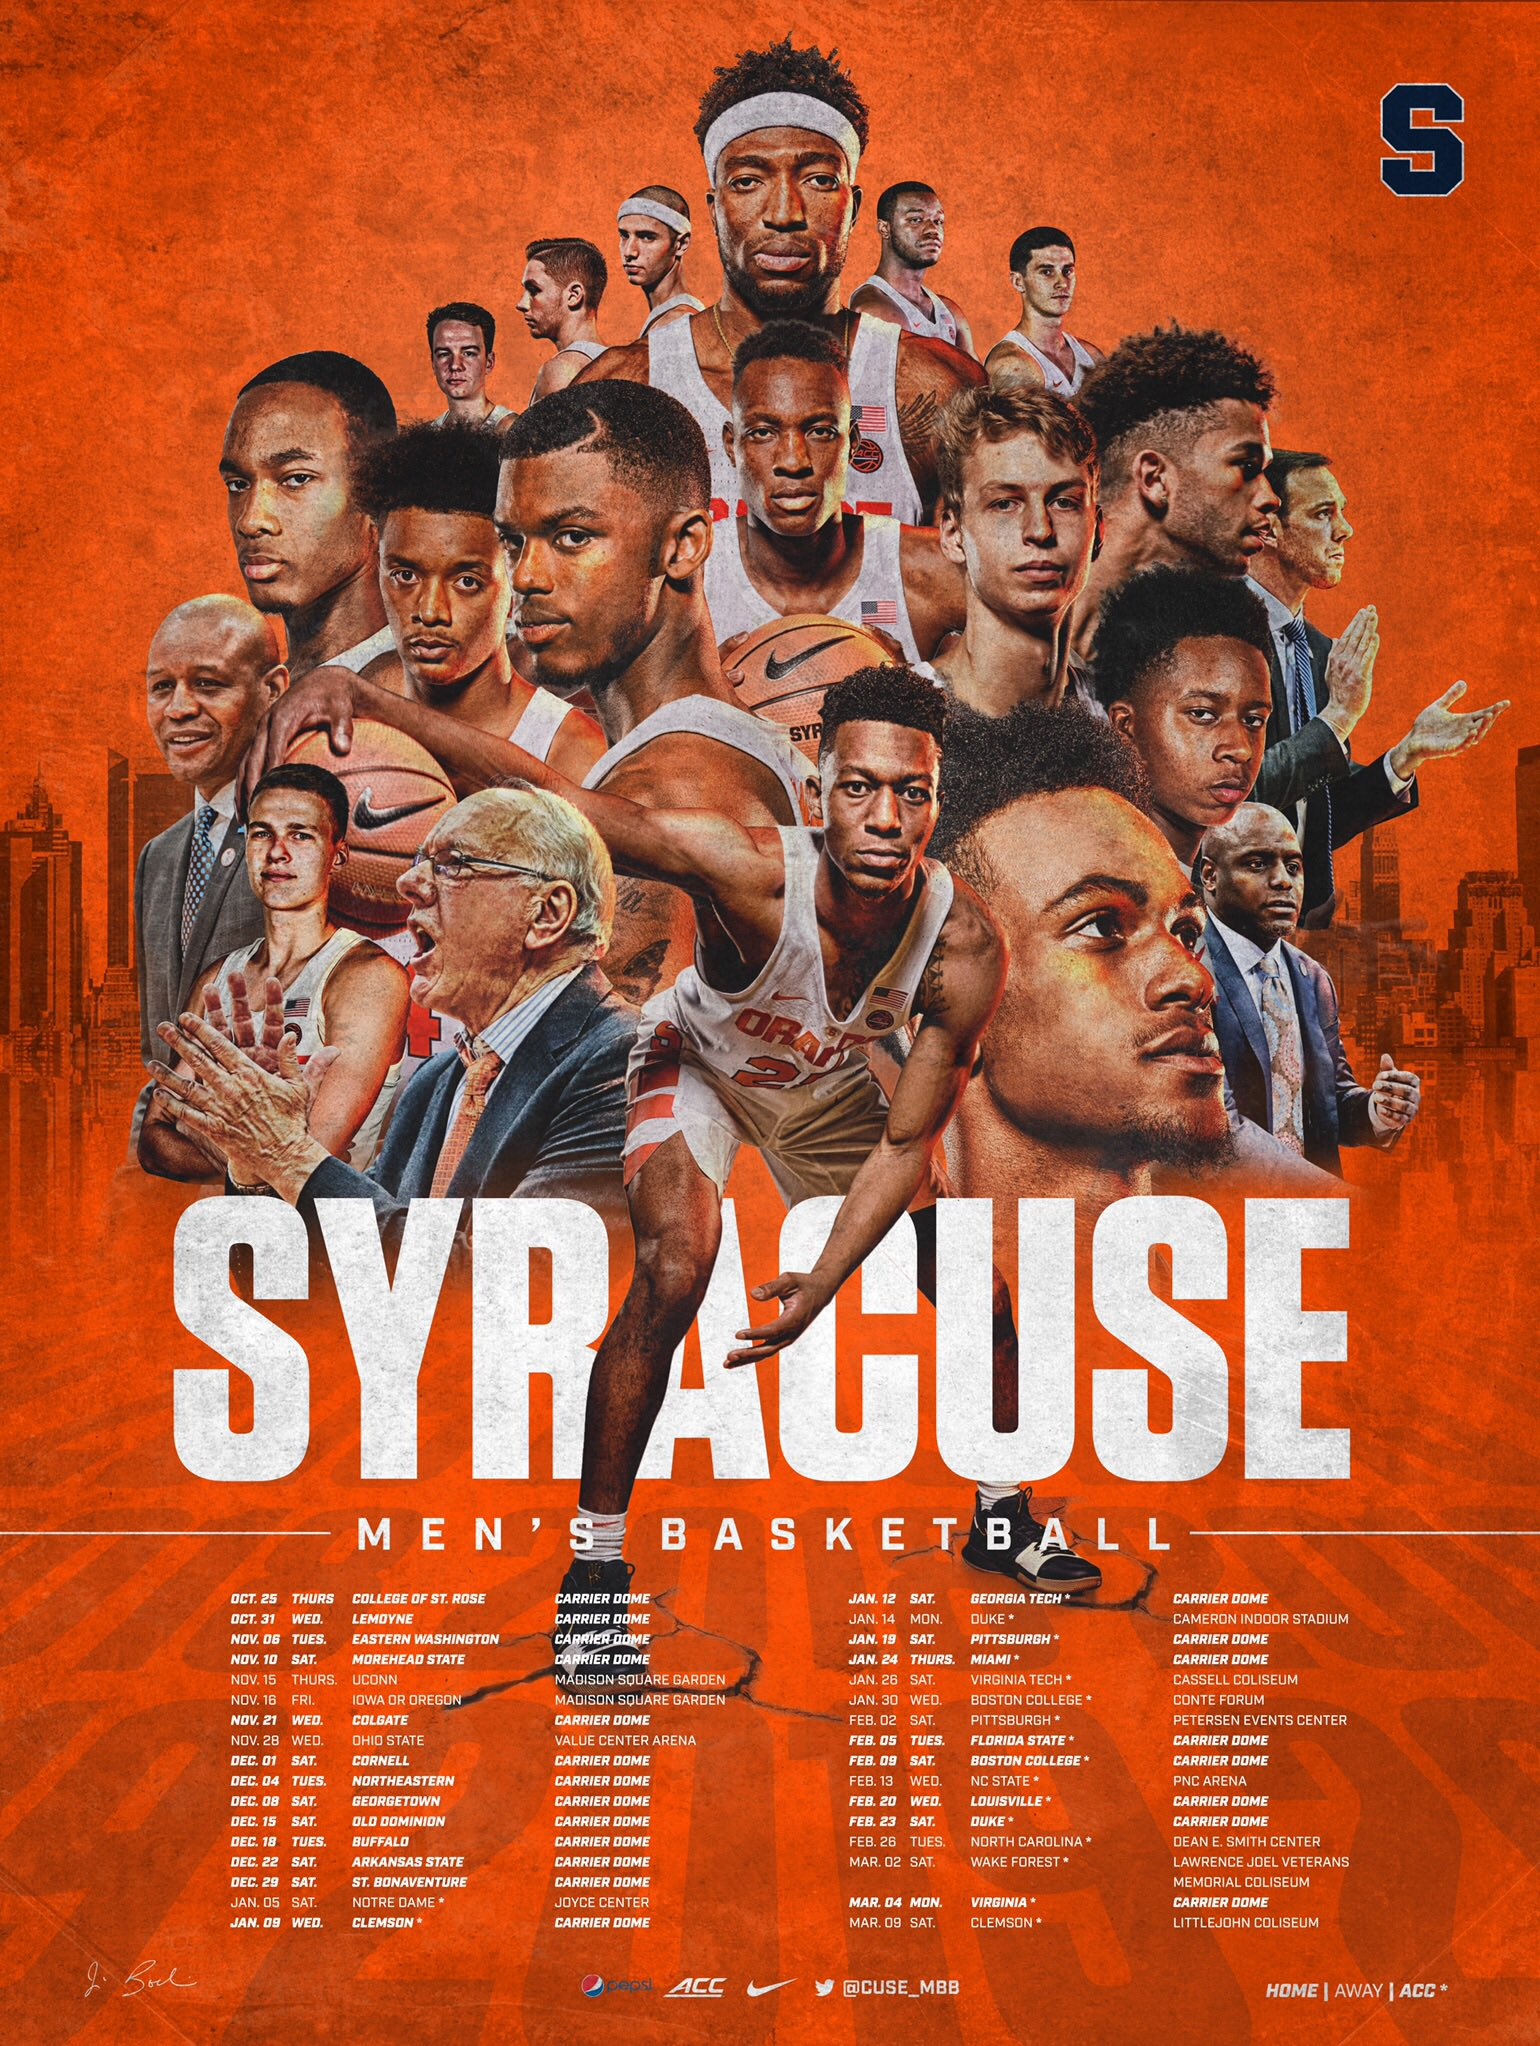 Syracuse Basketball On Twitter 2018 19 Poster Get Yours At The Orange Vs White Scrimmage On Friday Night At The Dome Admission Parking Are Free Https T Co Bcqi03tfvc